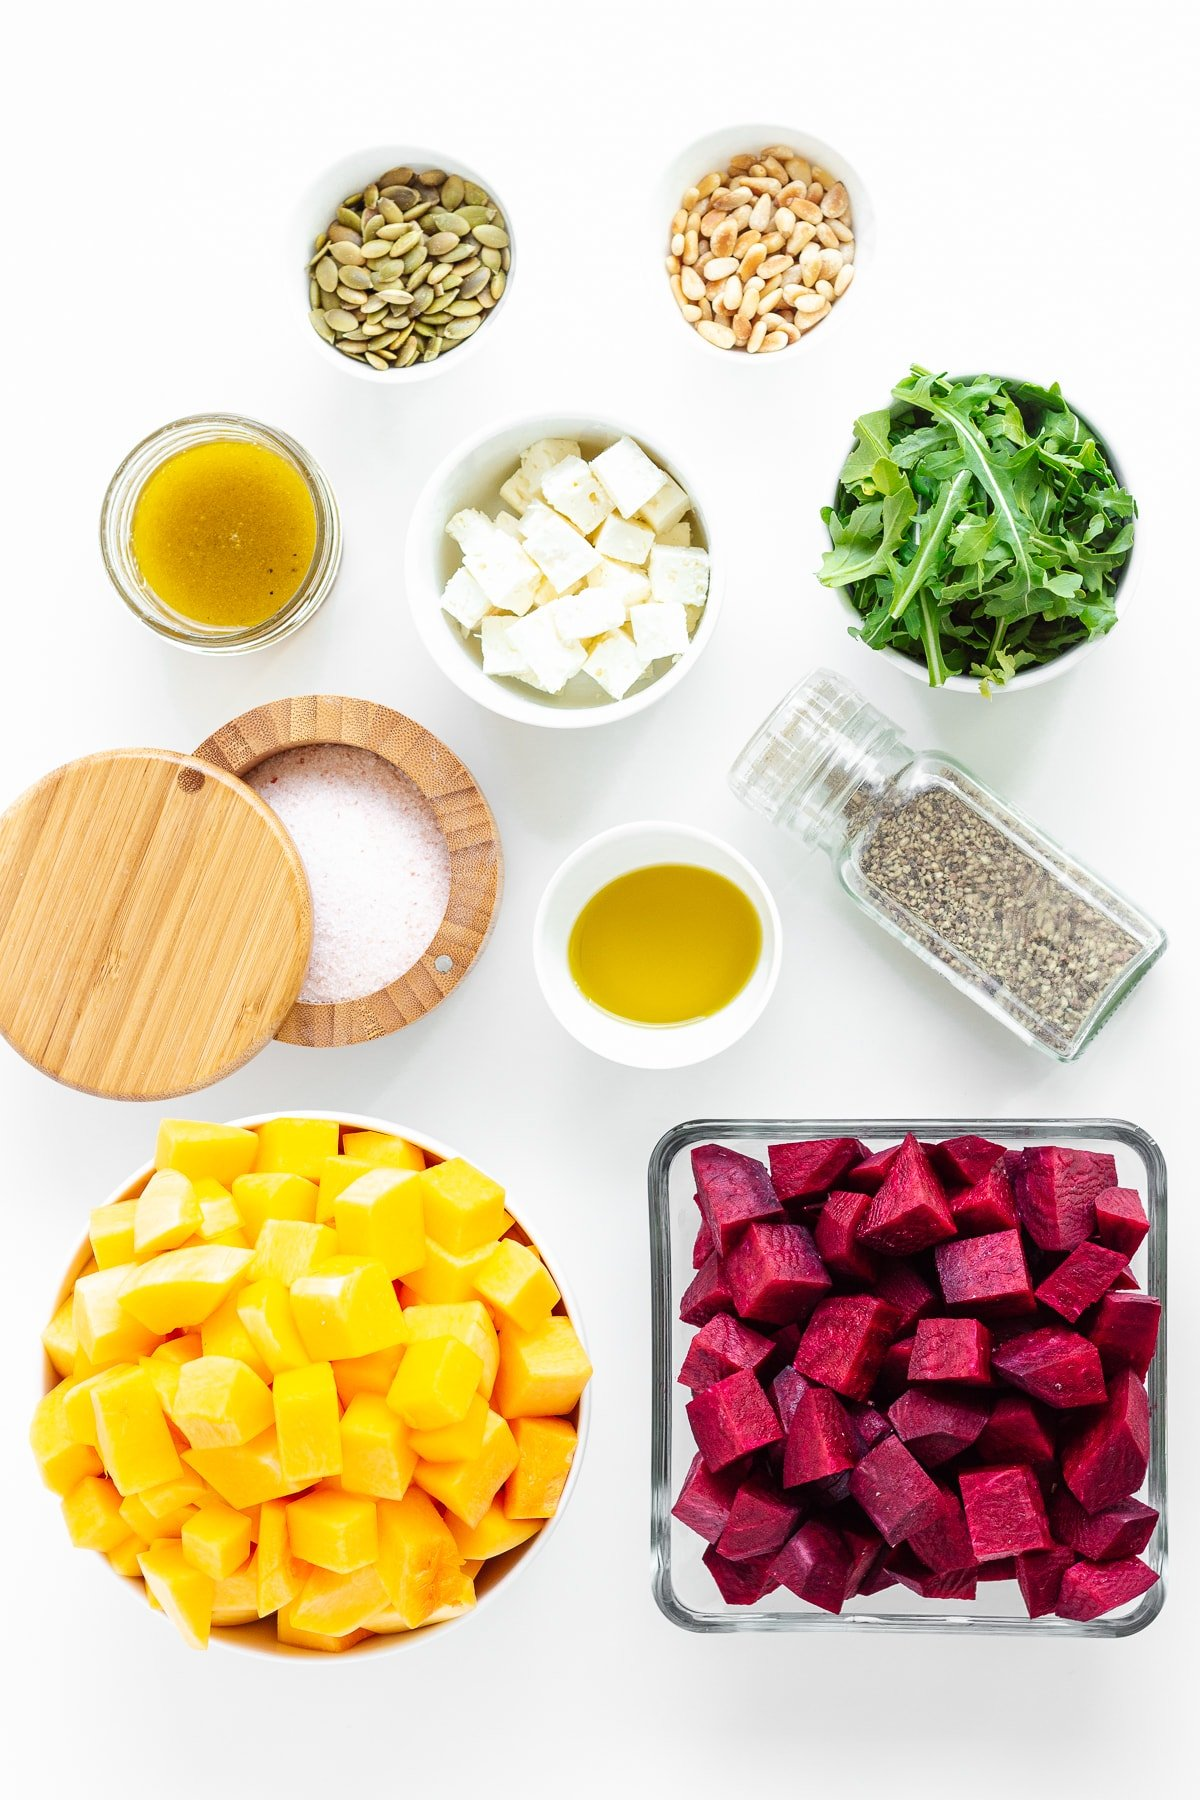 Overhead photo of ingredients needed to make a roasted pumpkin and beetroot salad.